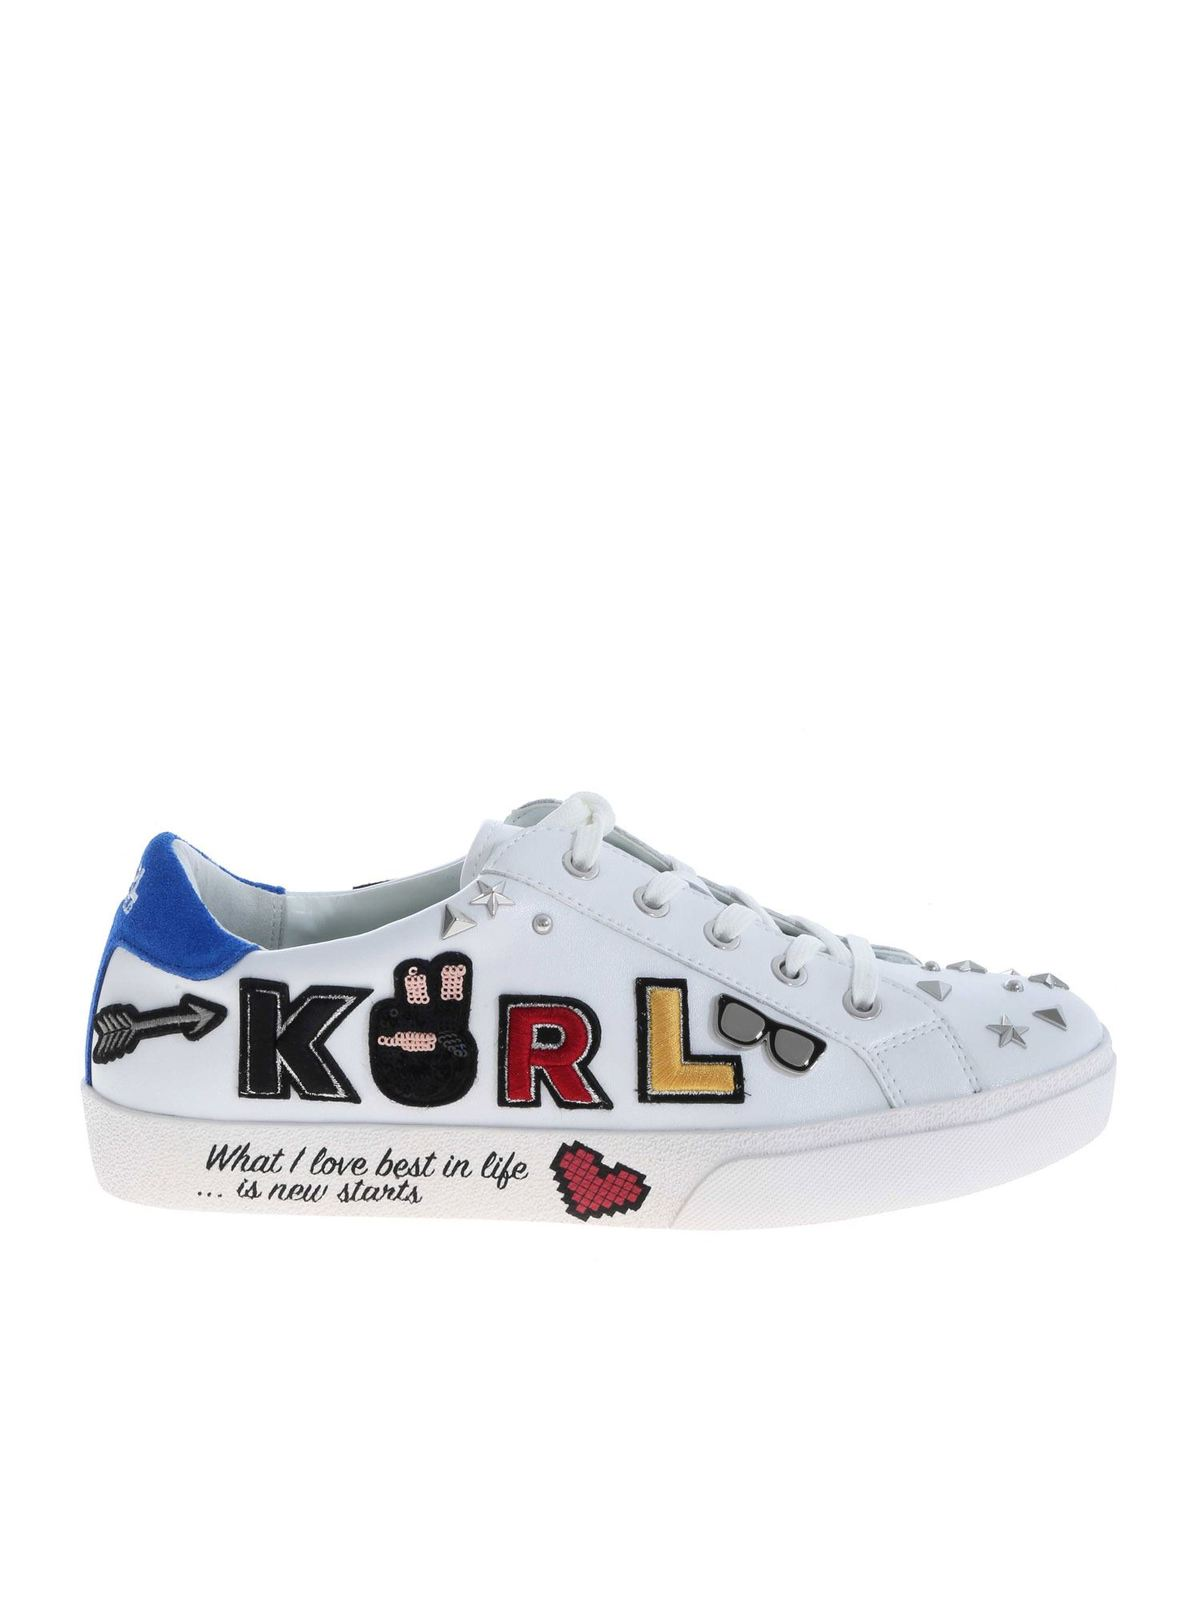 Karl Lagerfeld Women's Shoes Leather